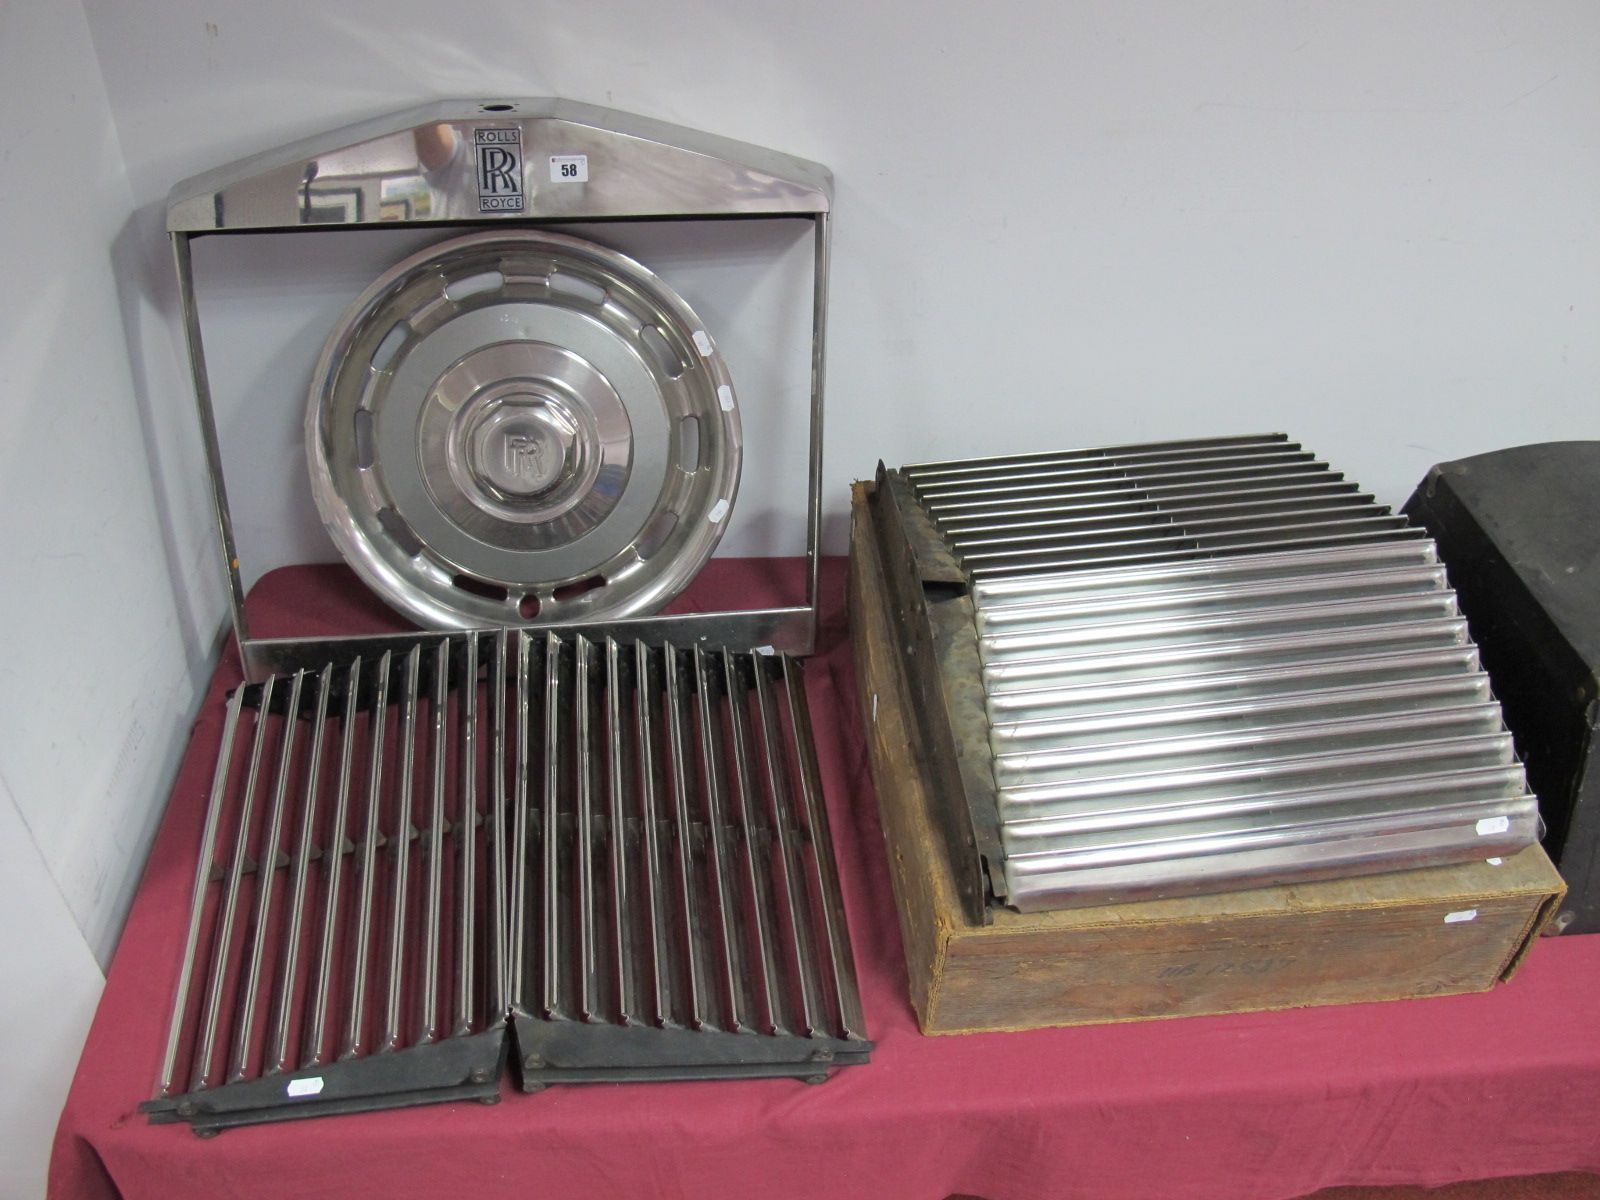 Lot 58 - Rolls Royce Front Grill Surround and Two Inners. with a Rolls Royce Wheel Trim